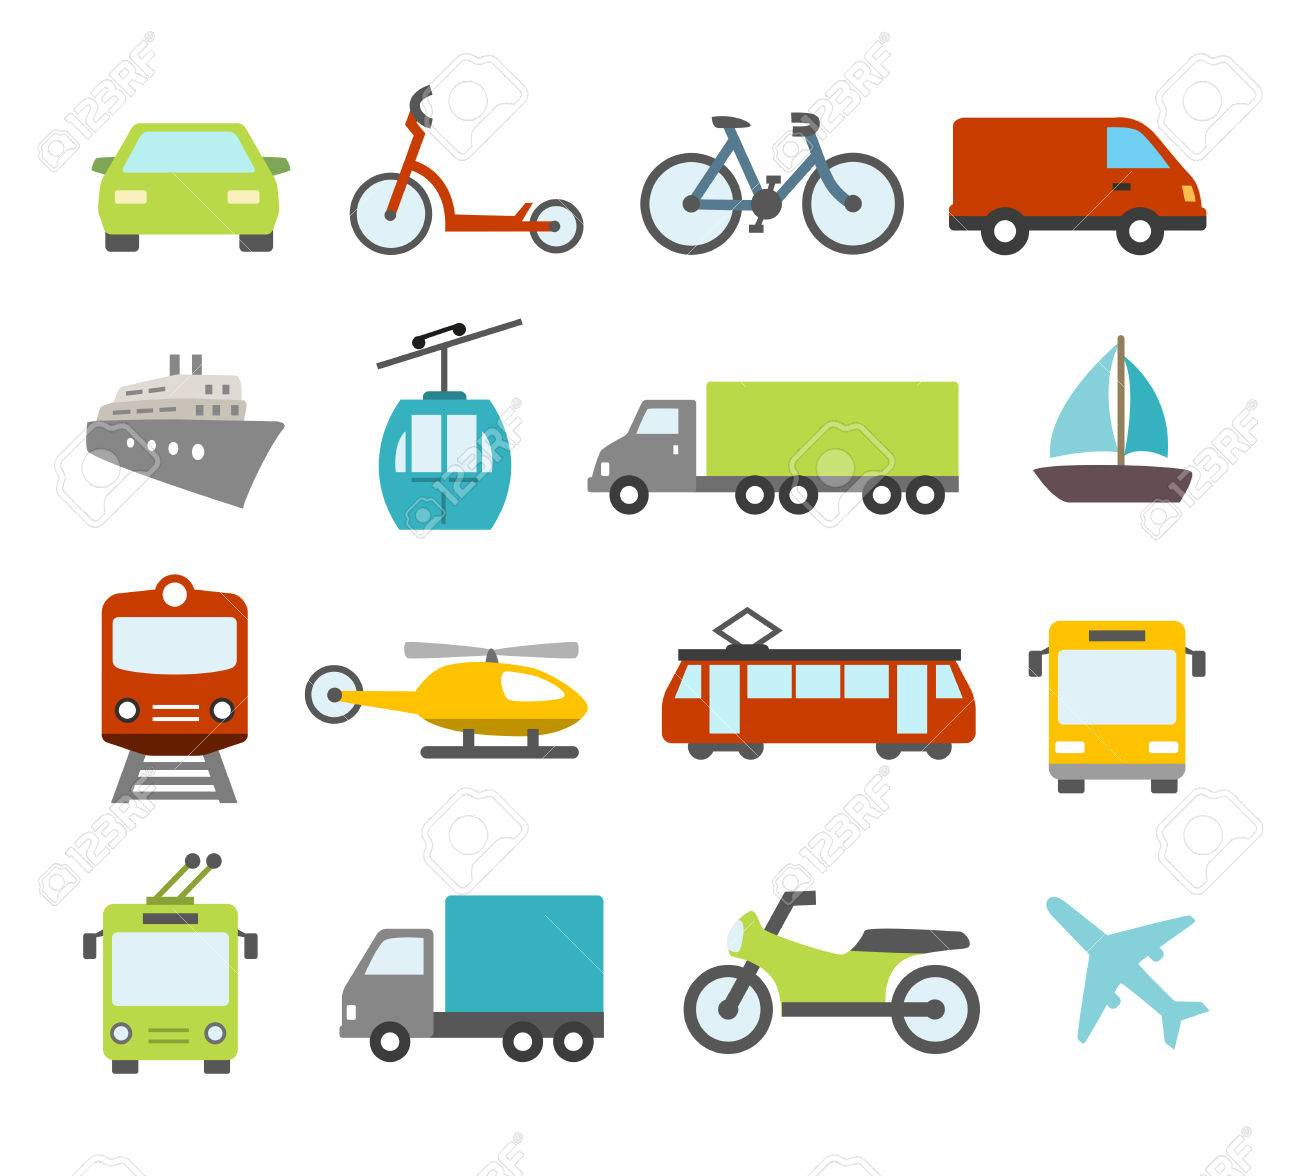 Collection of icons related to trasportation, cars and various vehicles Stock Vector - 50454822